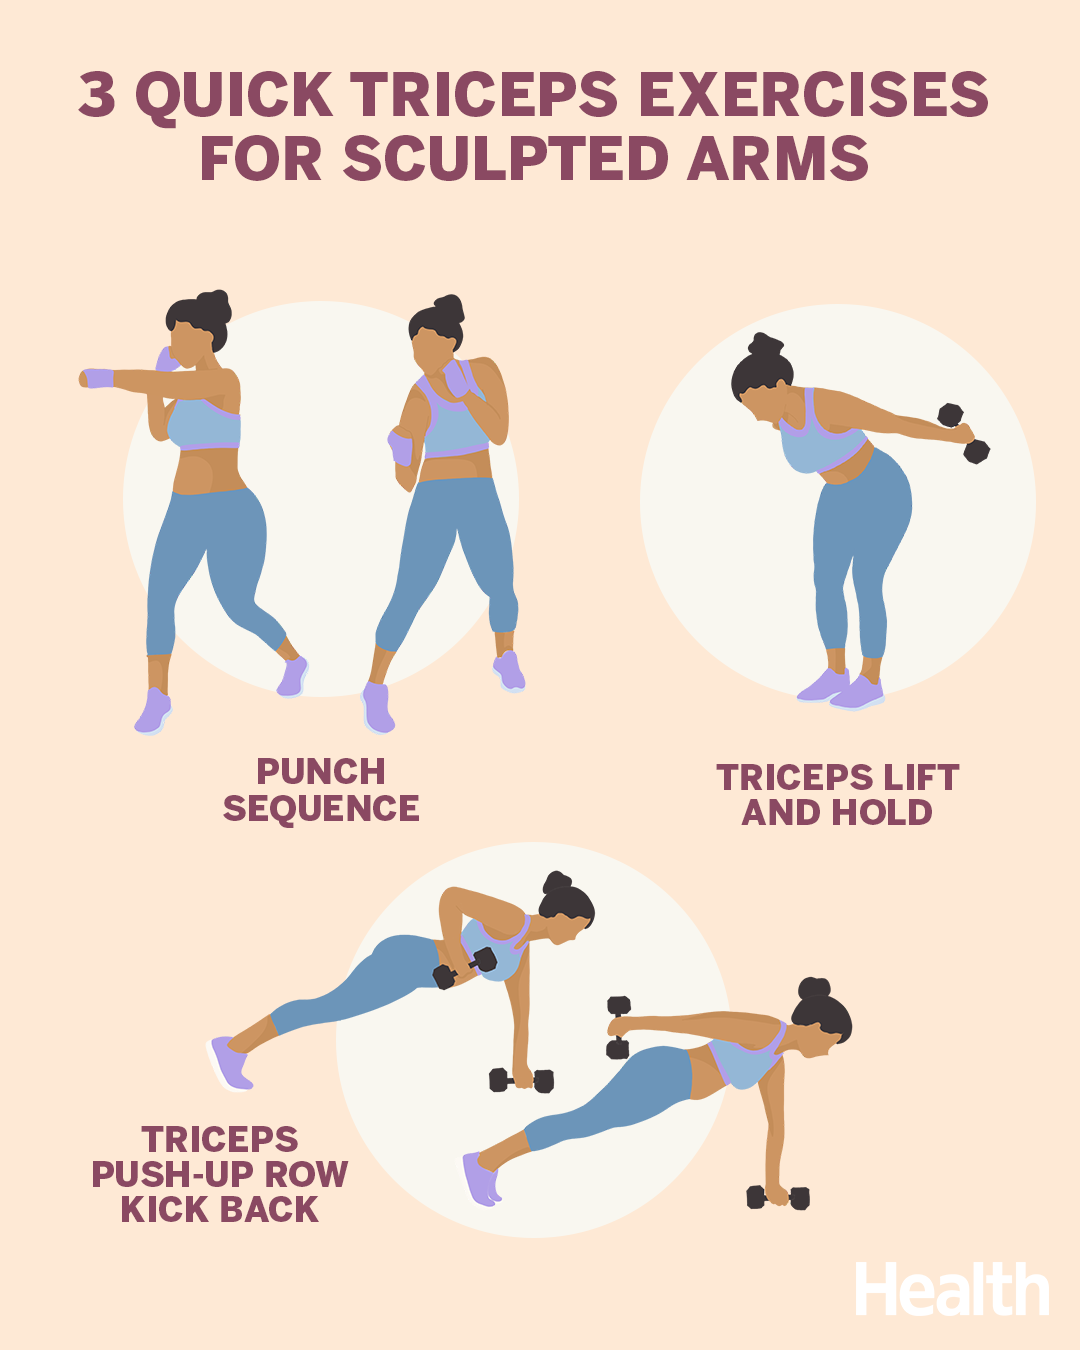 health_triceps_exercises_post1